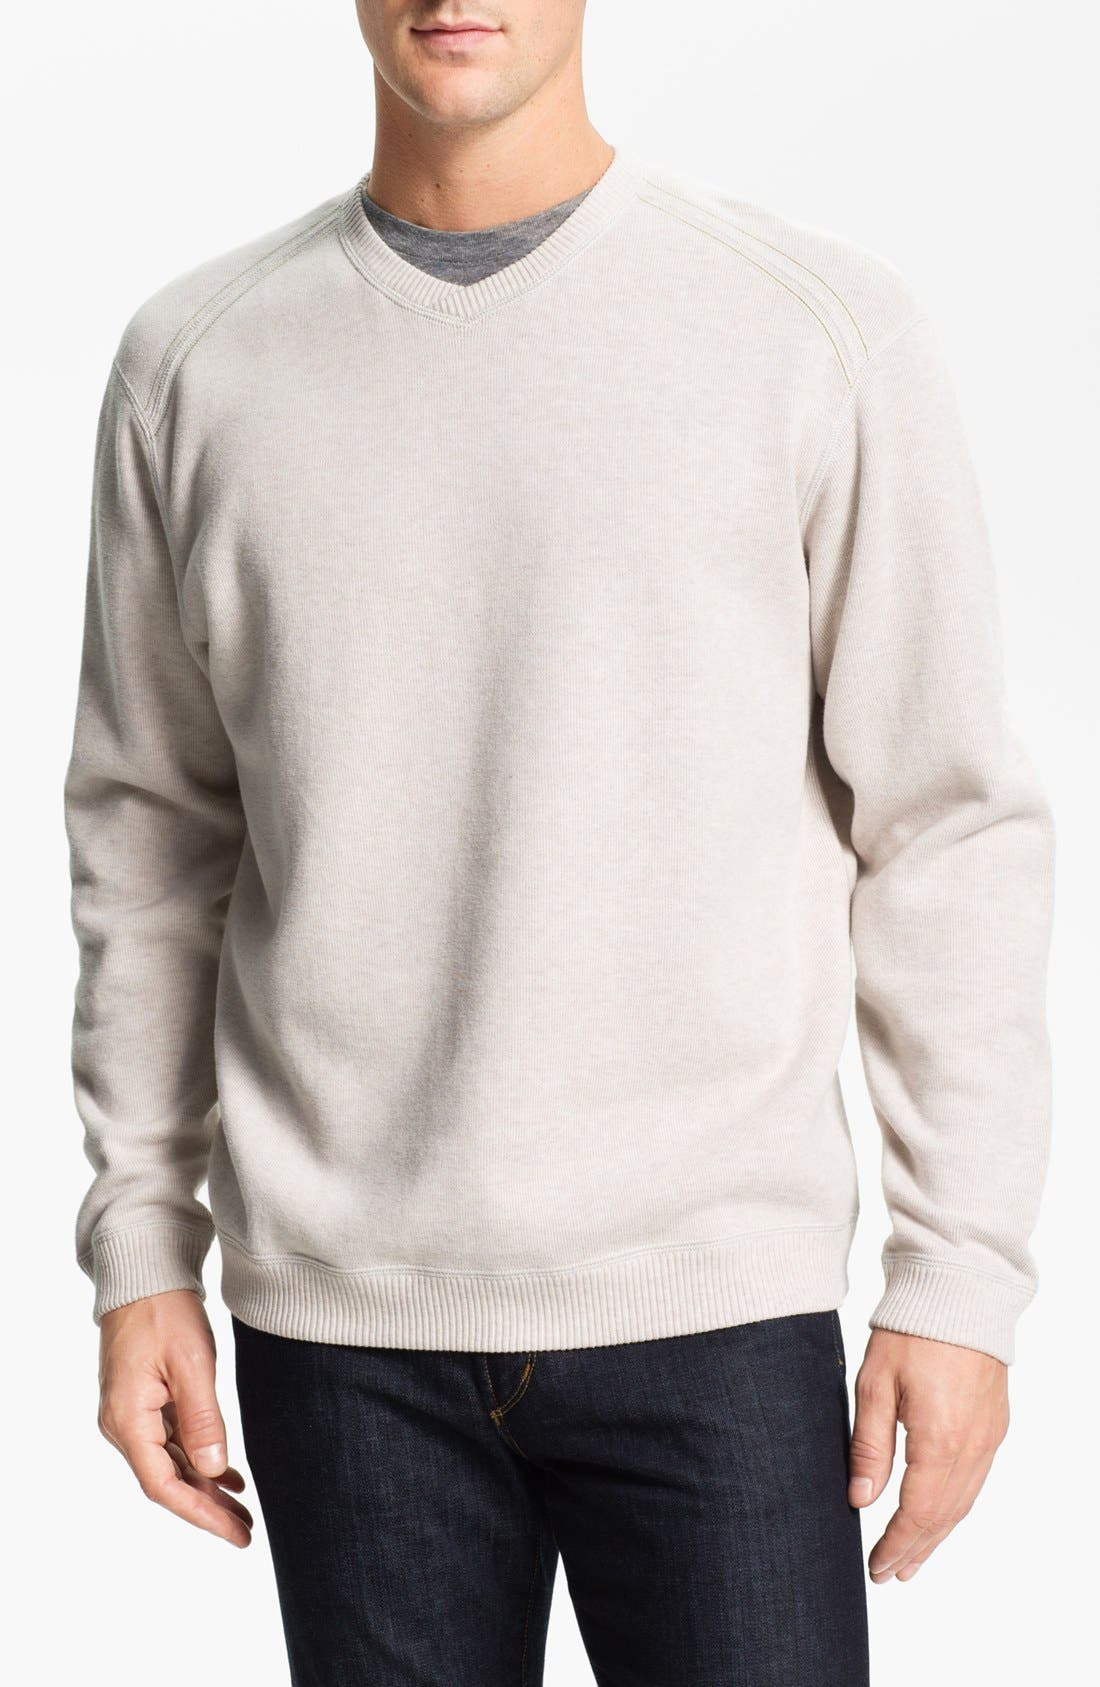 Alternate Image 1 Selected - Tommy Bahama 'Flip Side Pro' Fleece V-Neck Sweatshirt (Big & Tall)